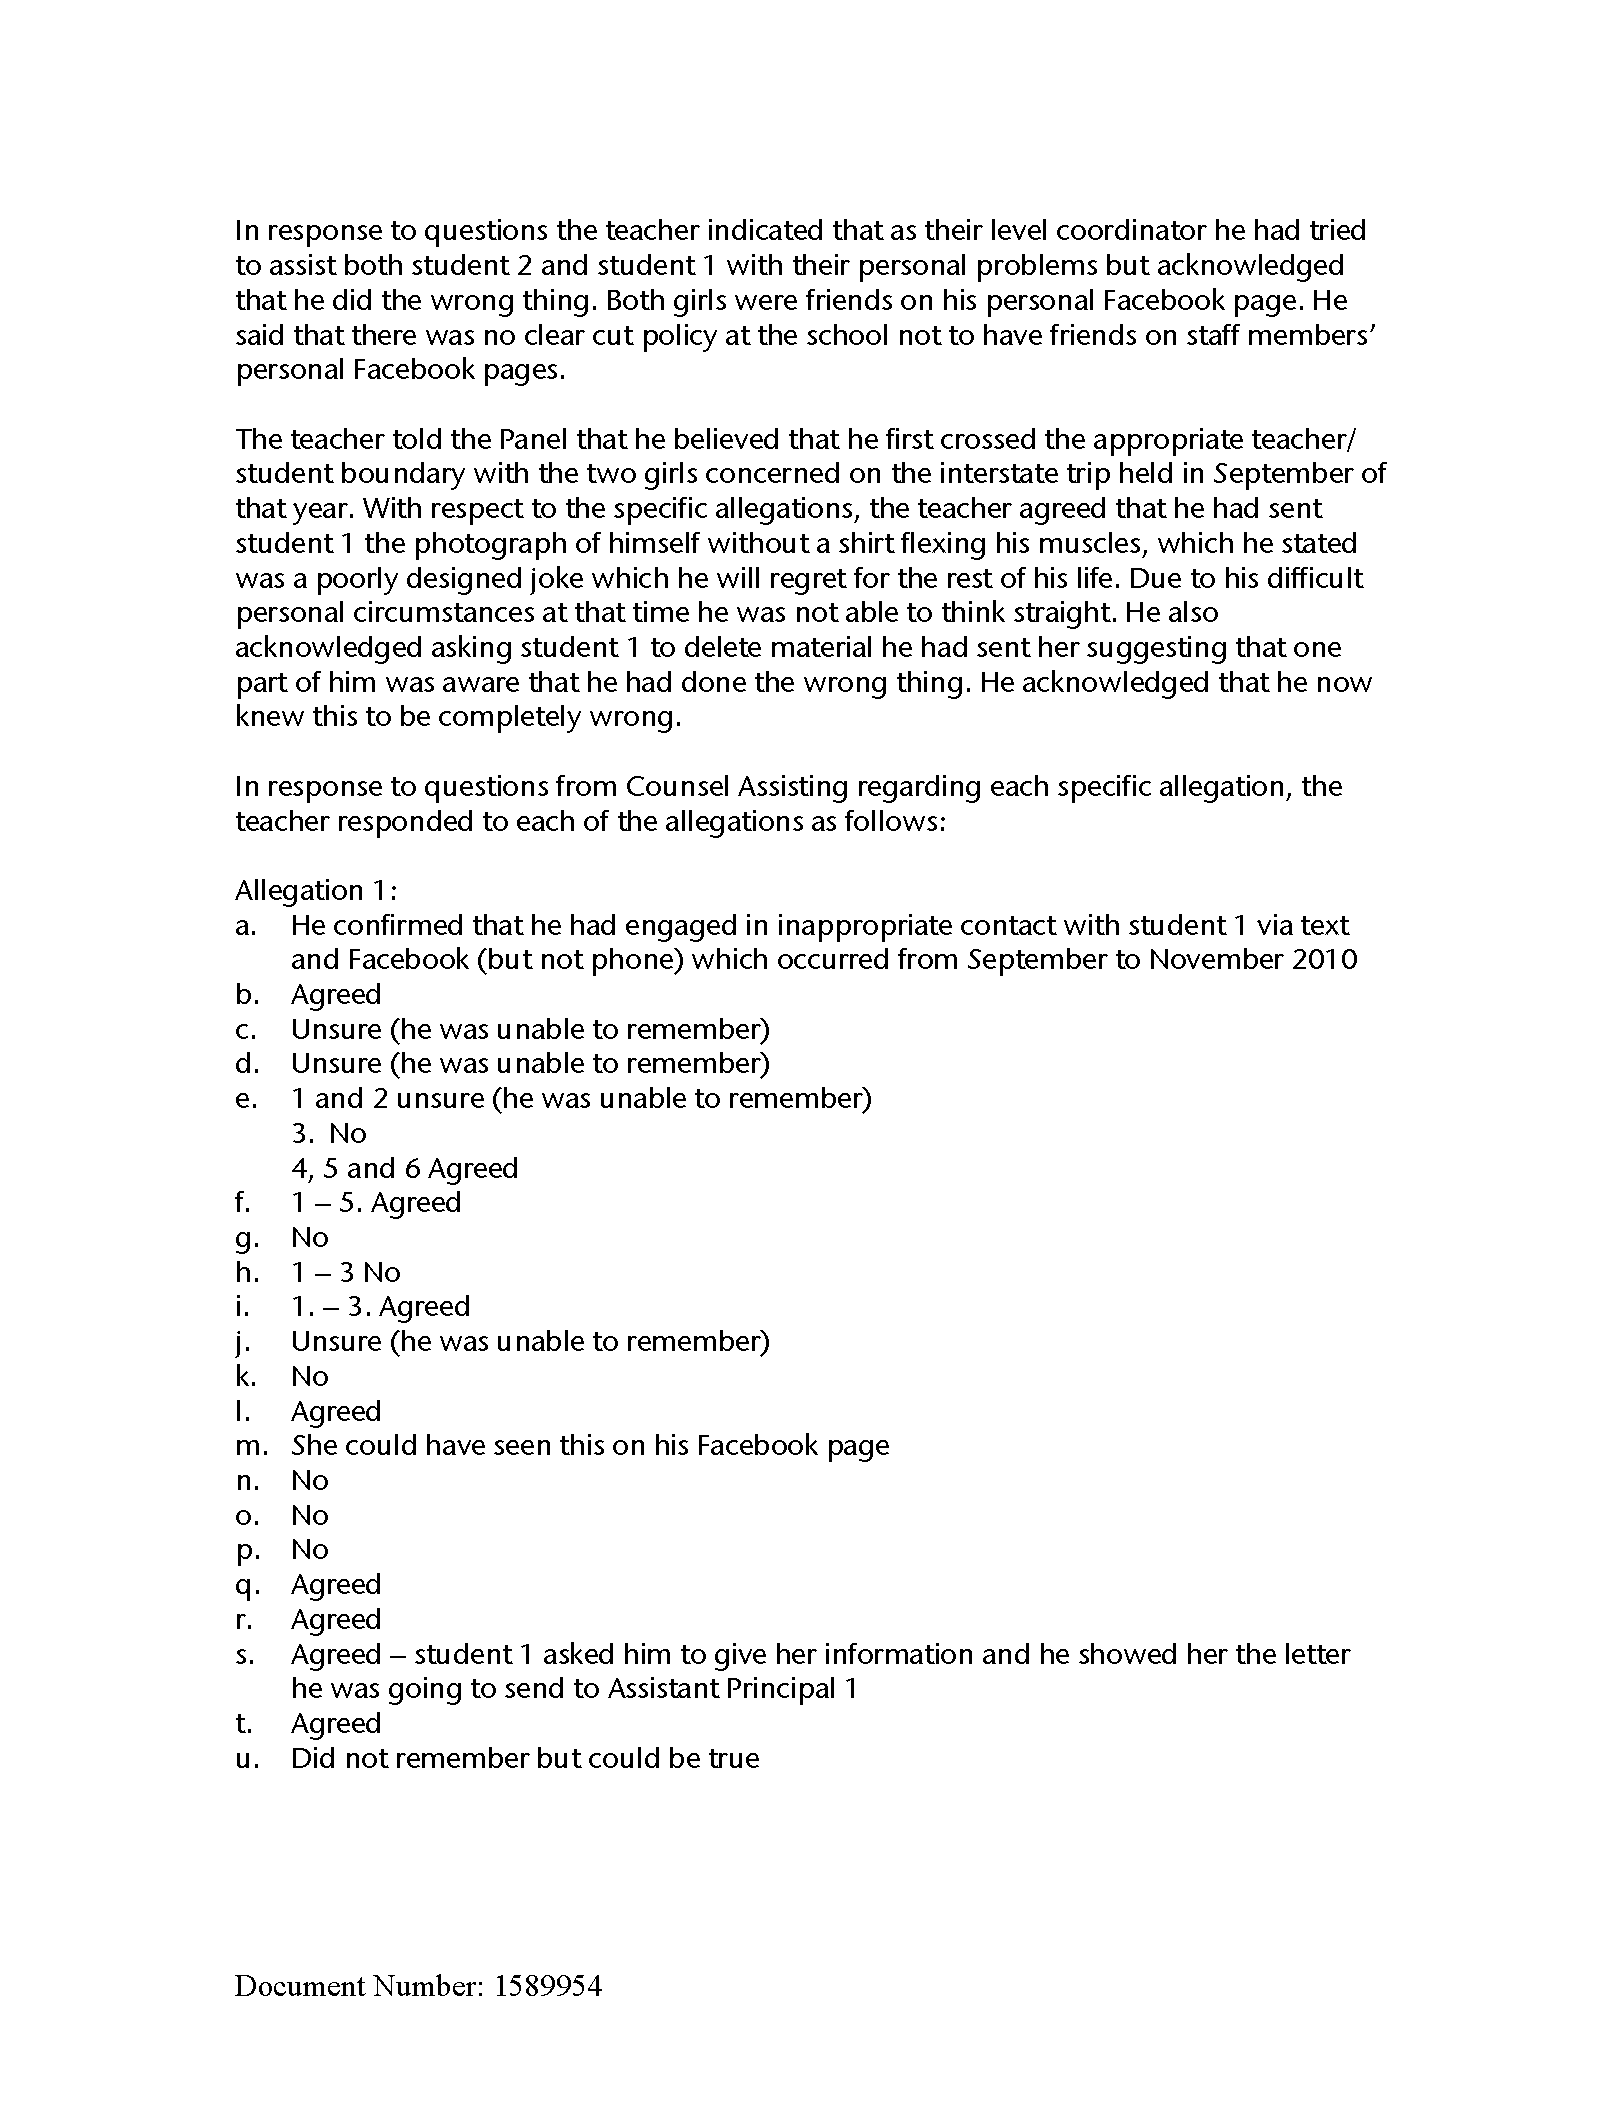 Copy of SanitisedPleydellDecision08.png